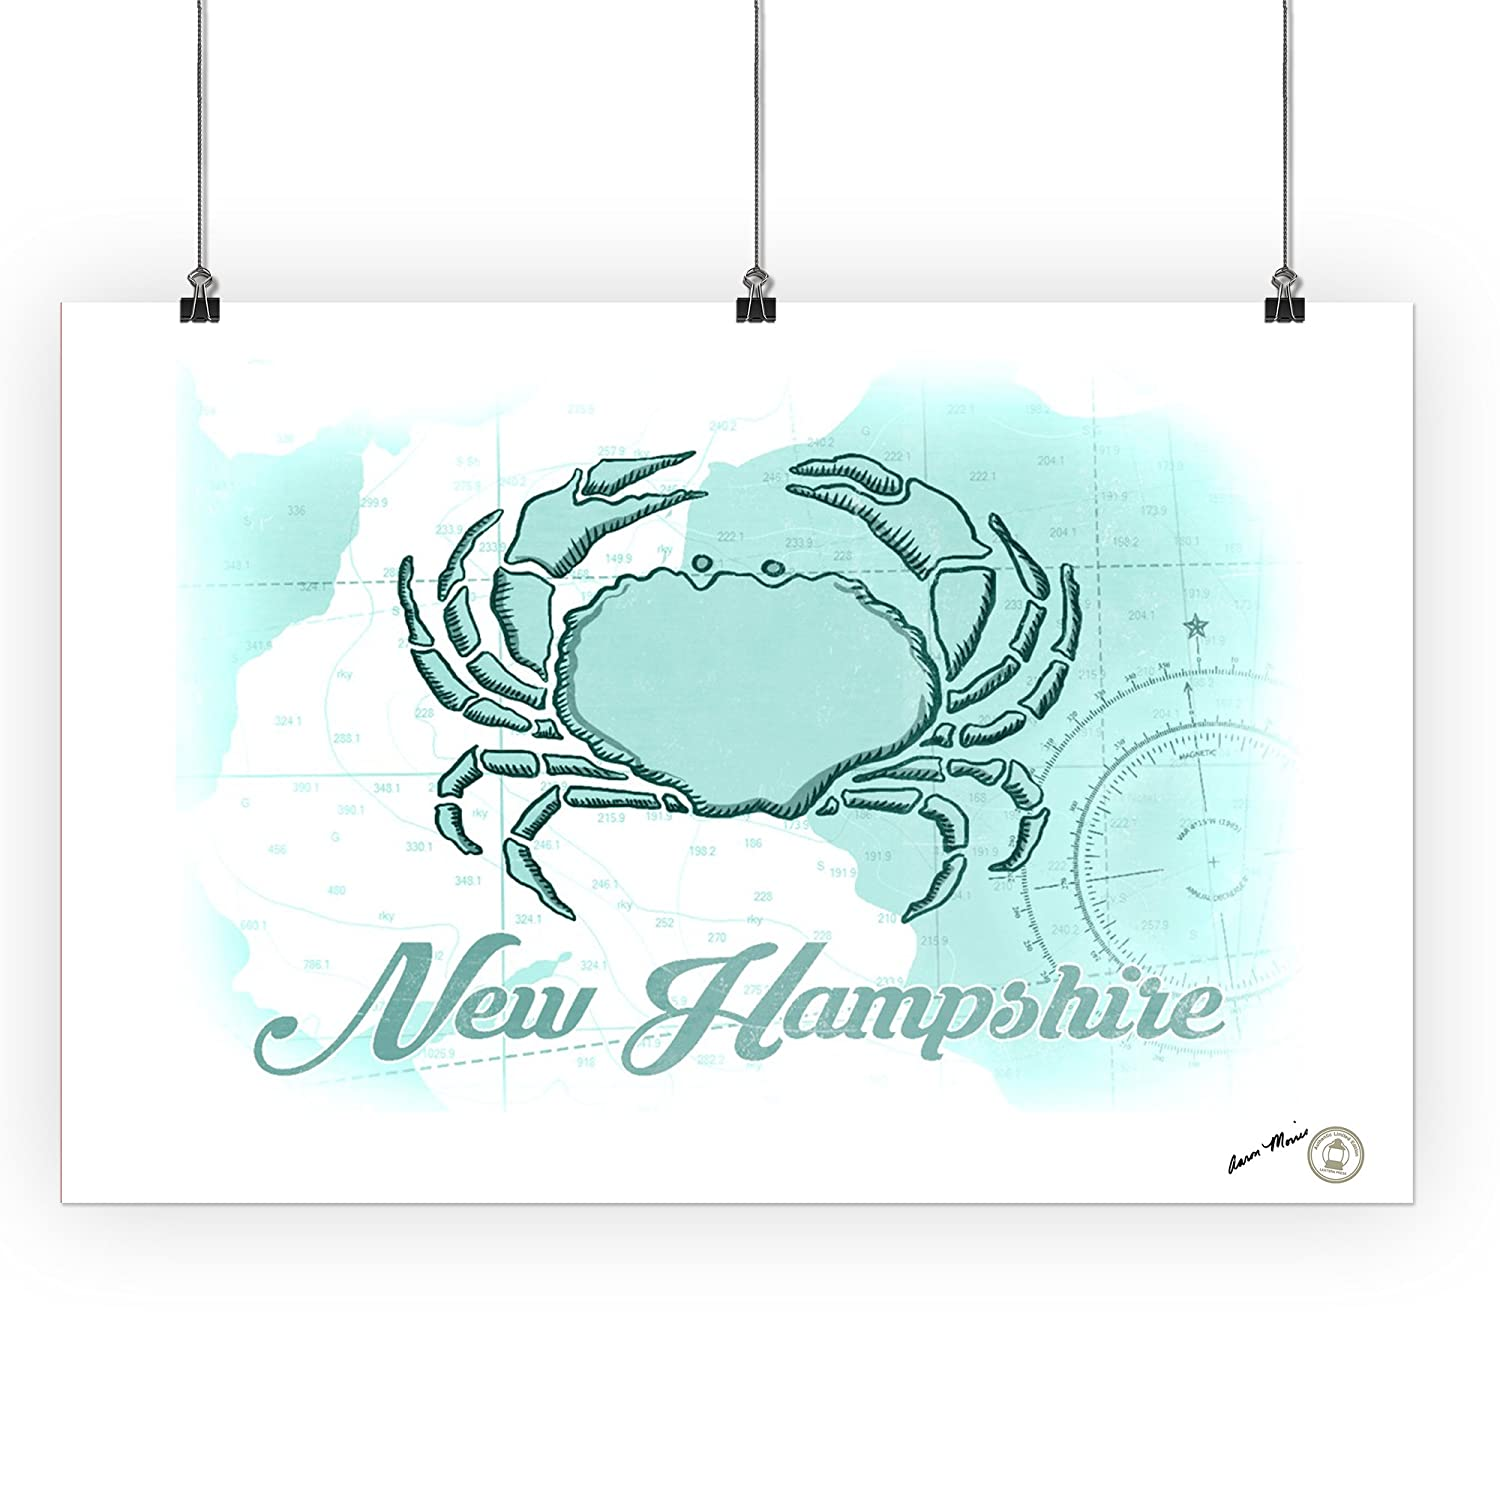 36x54 Giclee Gallery Print, Wall Decor Travel Poster Teal Coastal Icon New Hampshire Crab